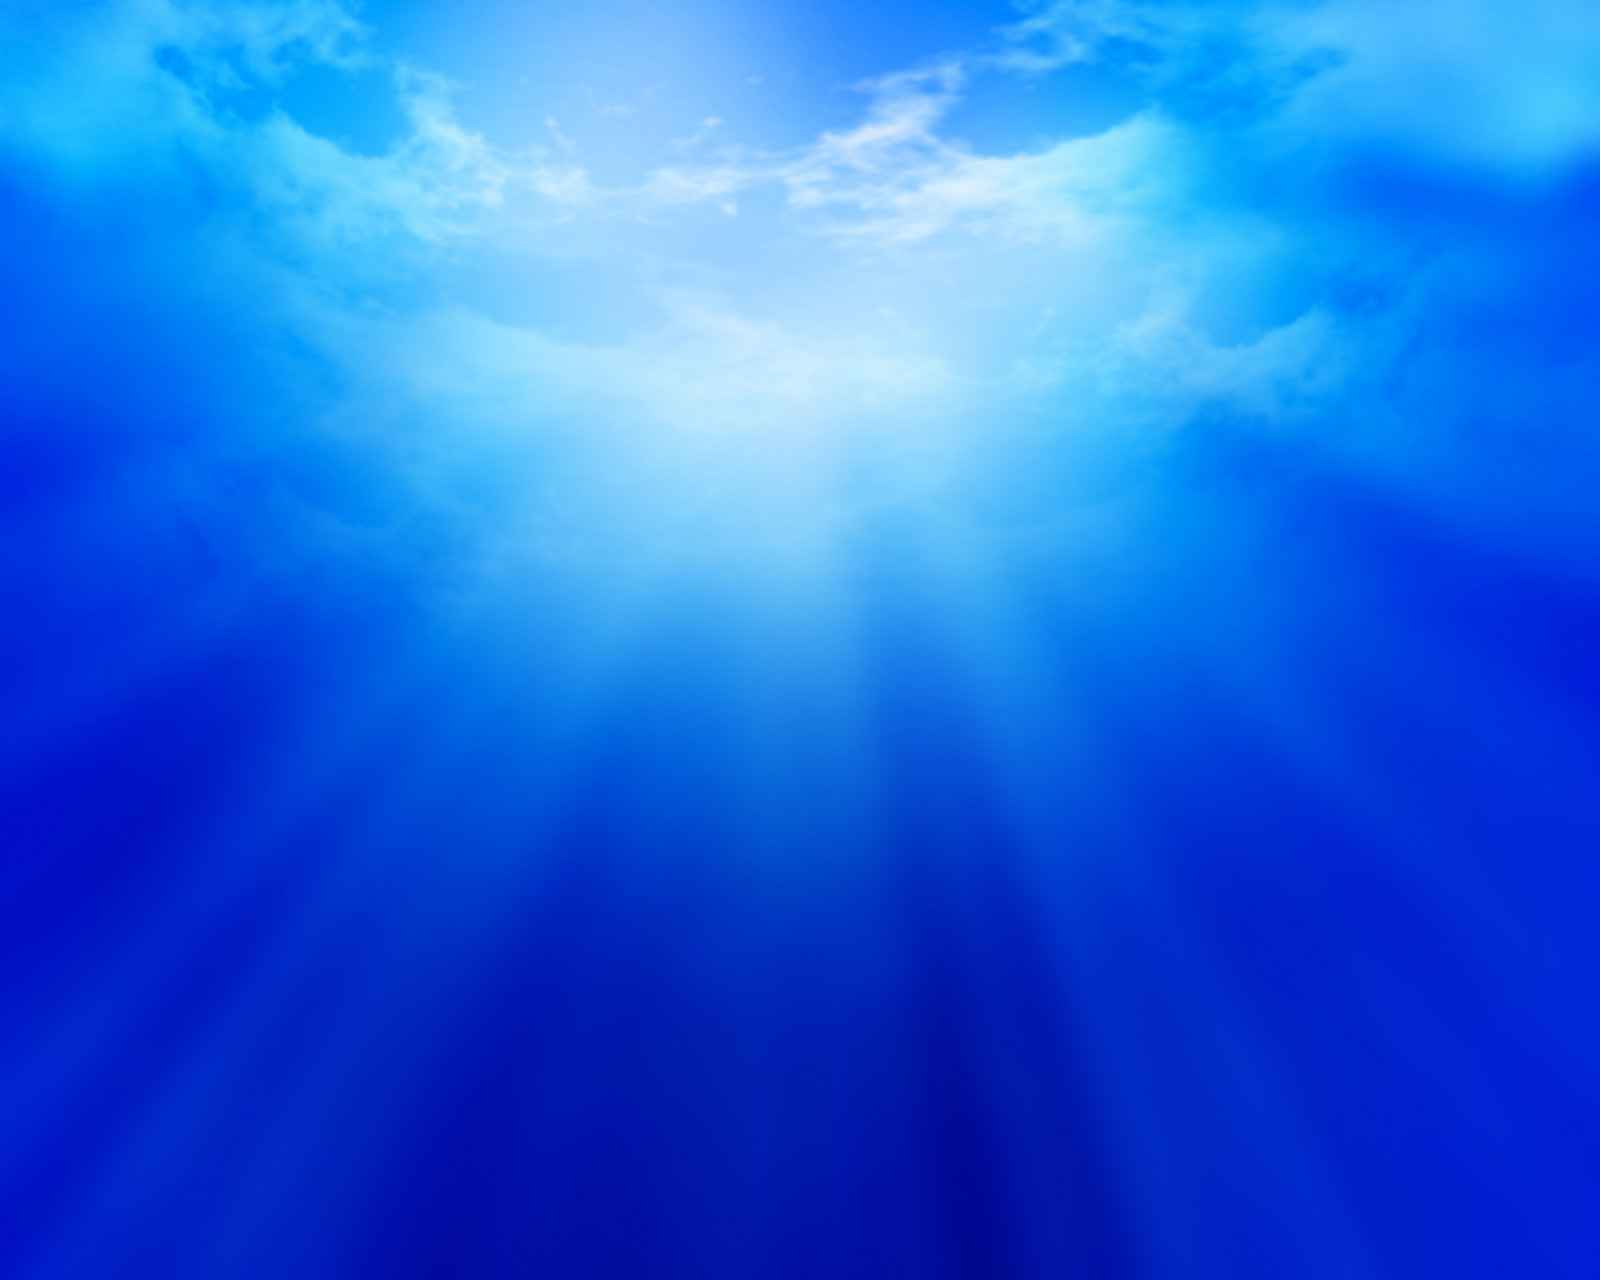 Blue background material 25823